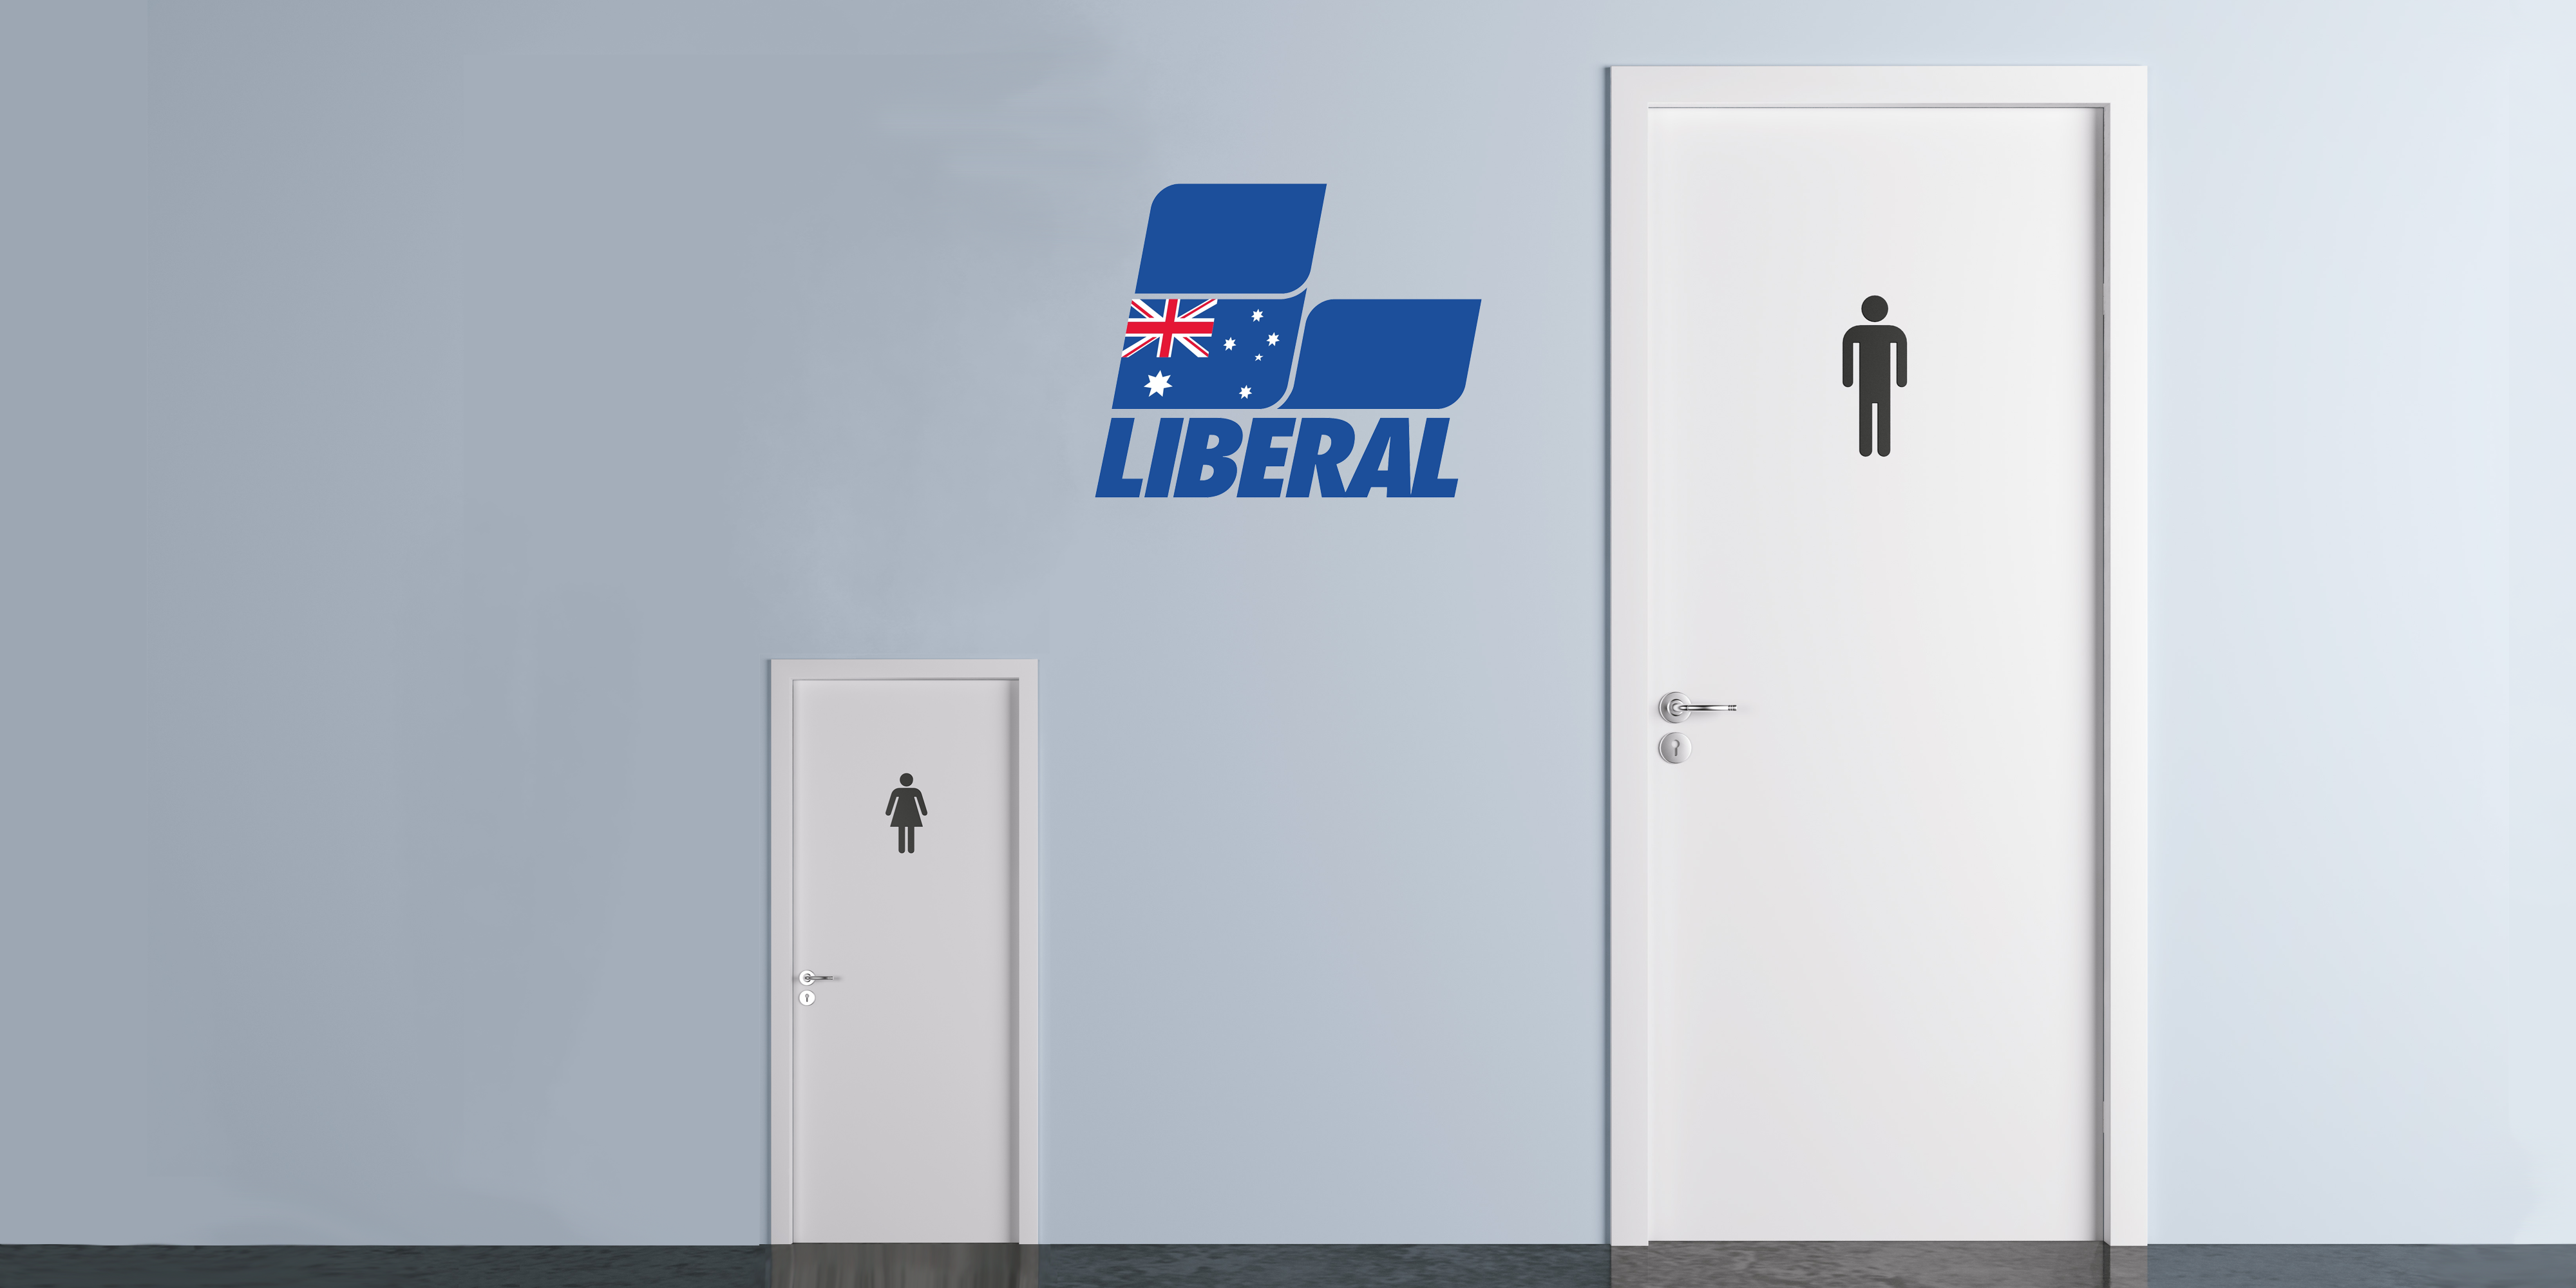 The Liberals have a serious women problem – and it's time they took action to change it